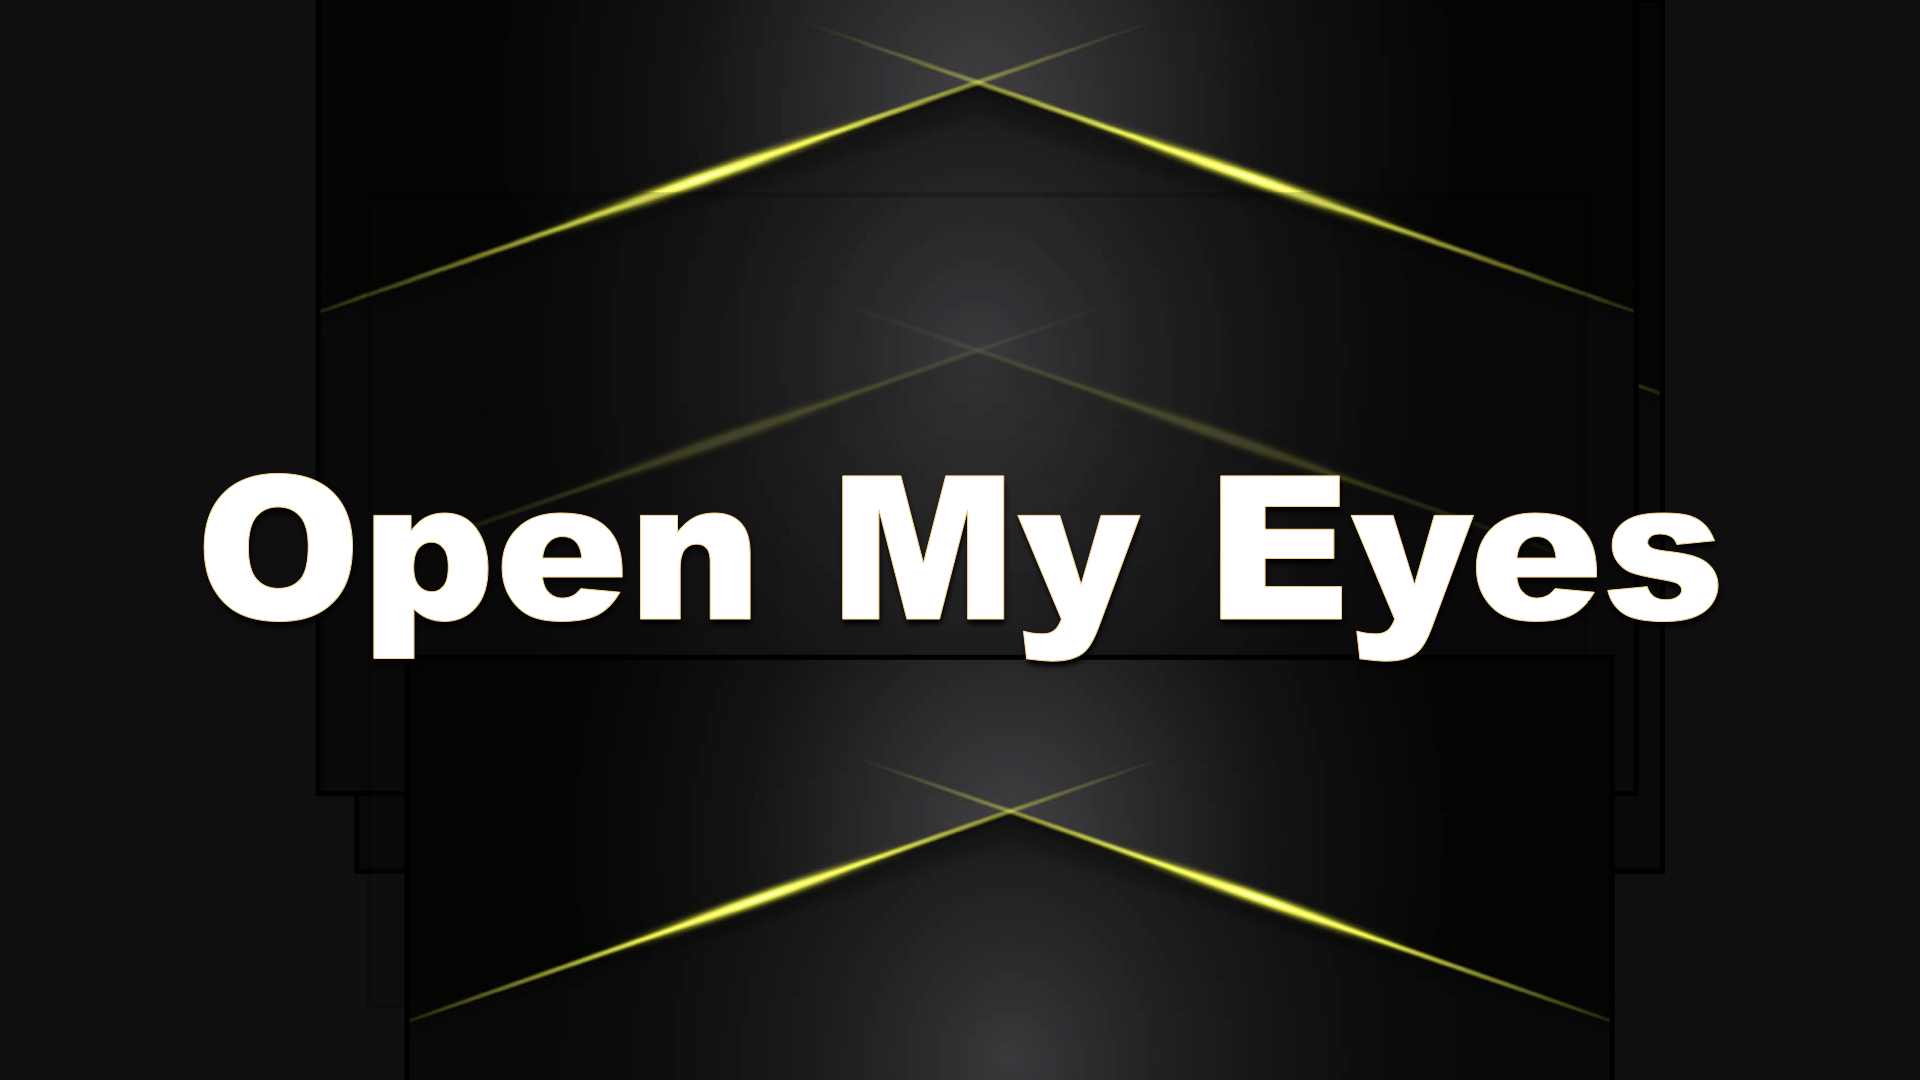 Open My Eyes 7142019 82422 AM